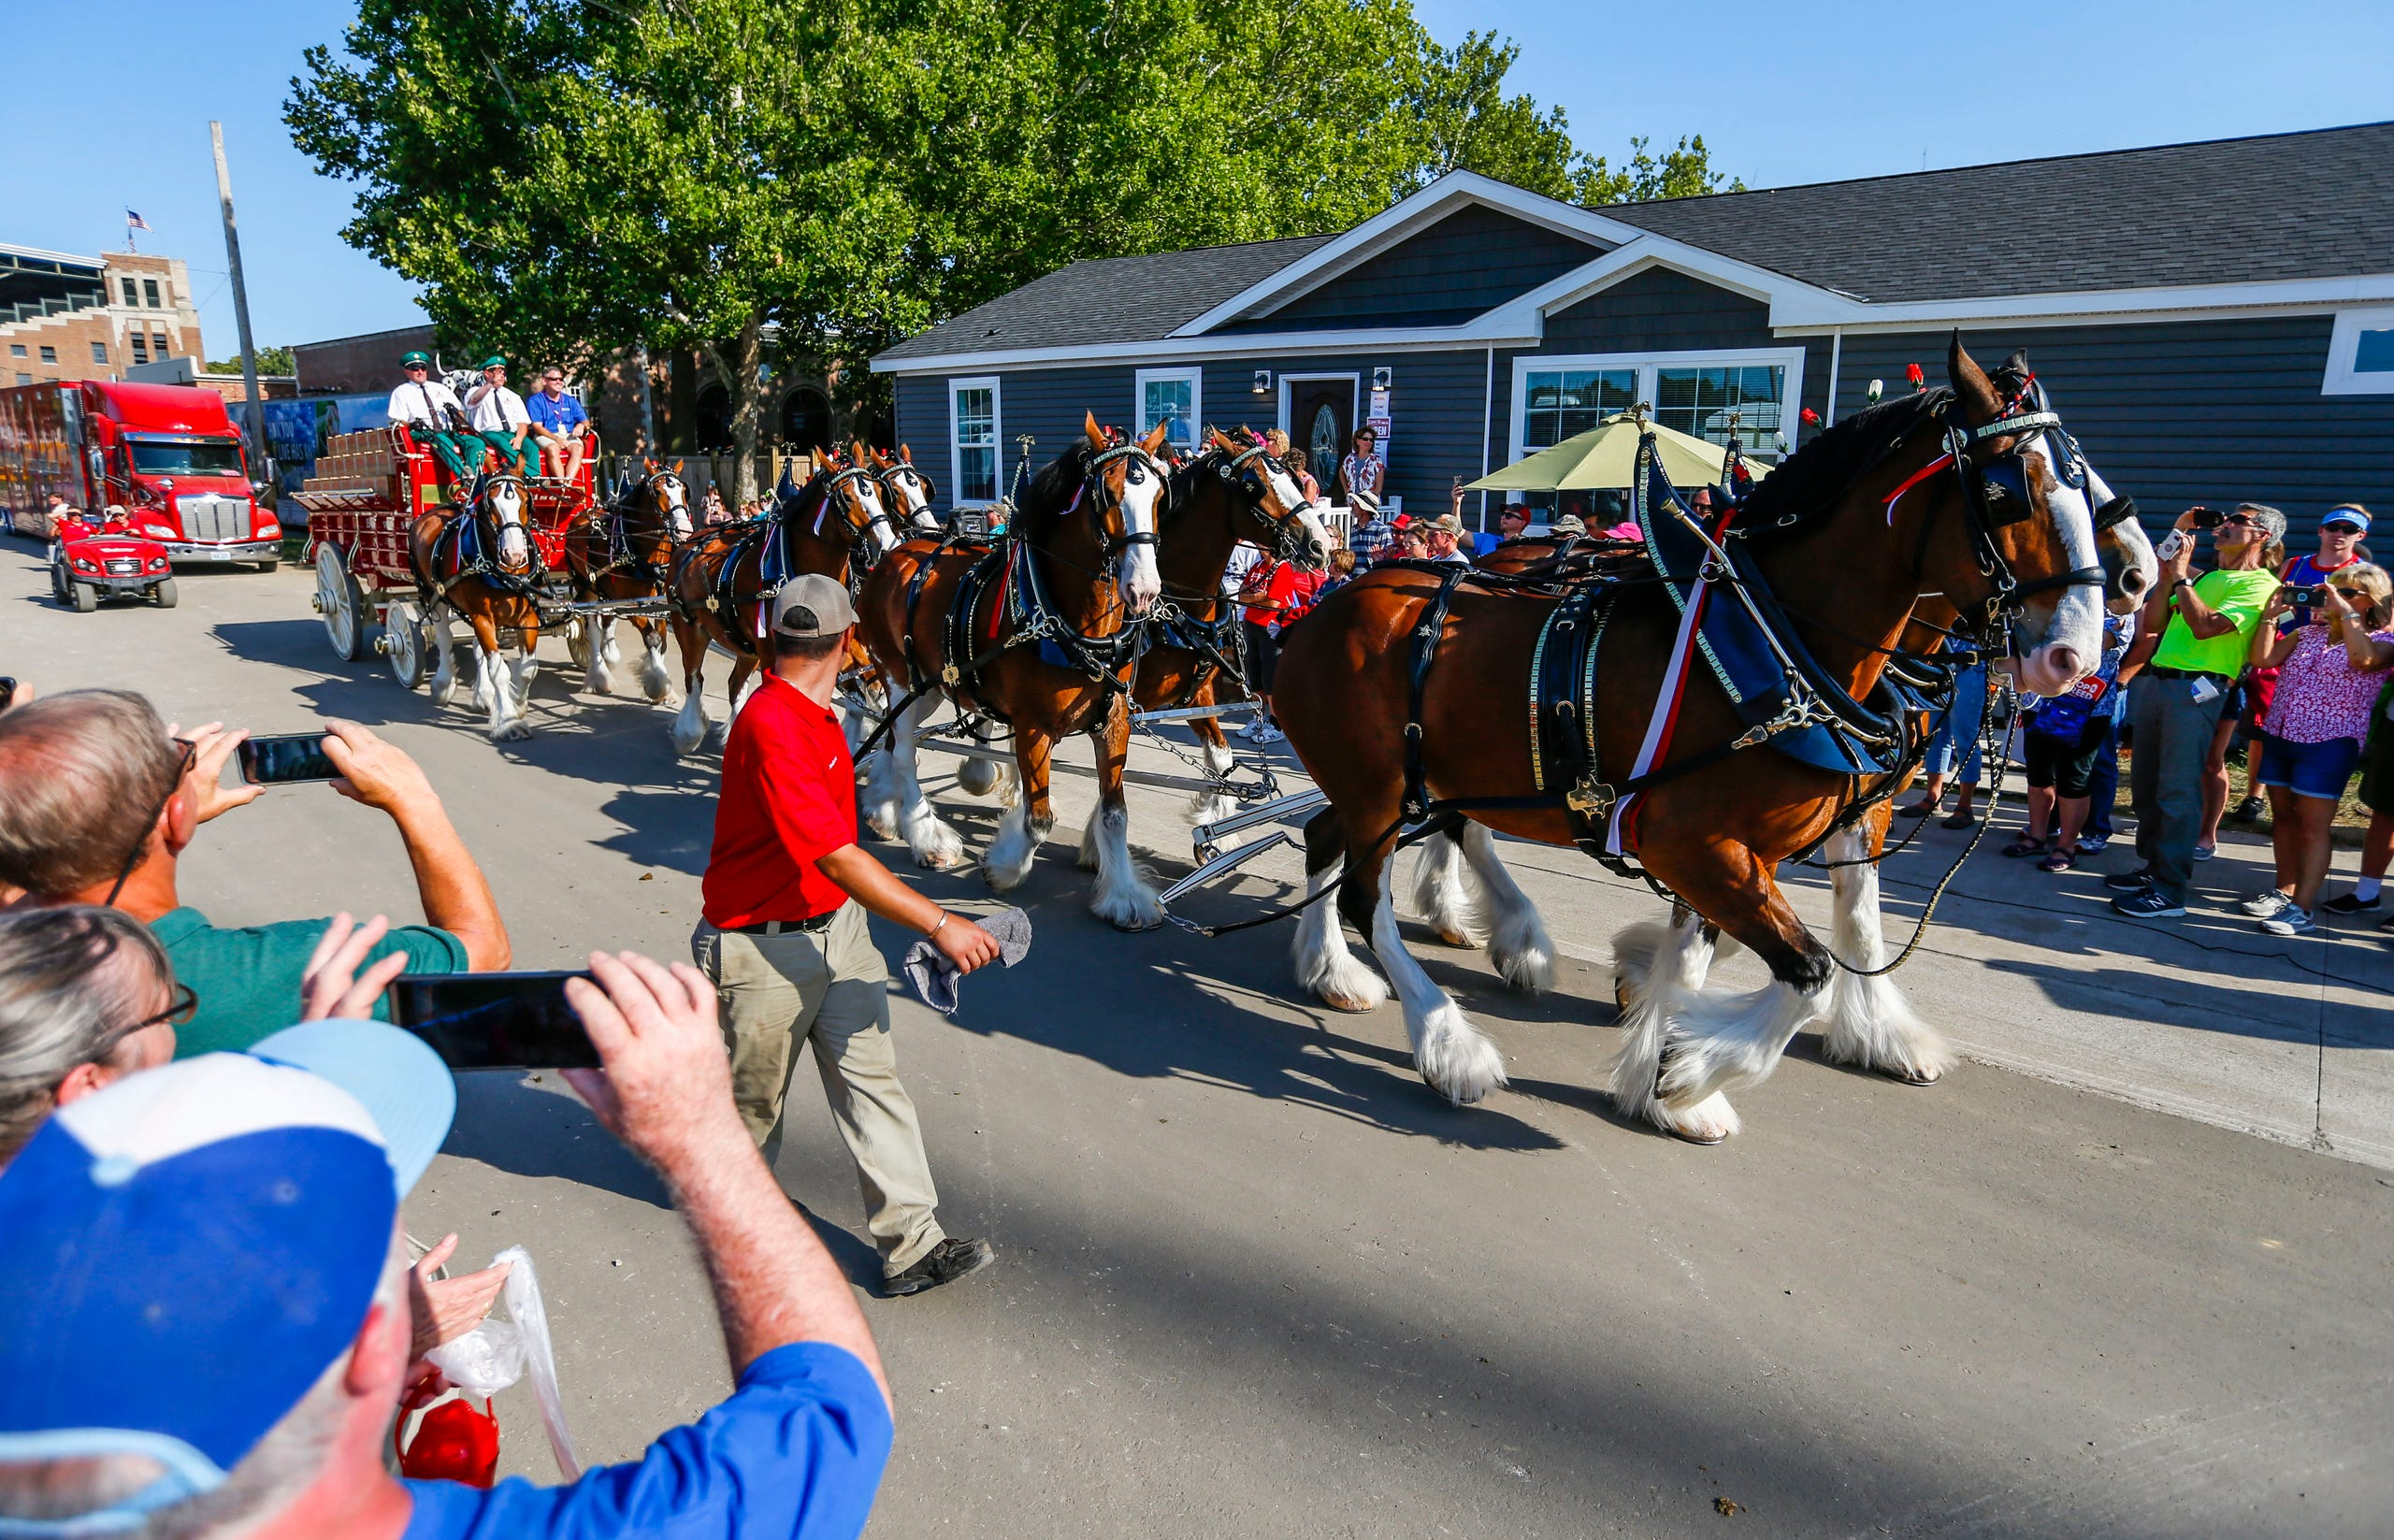 Photos: Budweiser Clydesdales at the Iowa State Fair